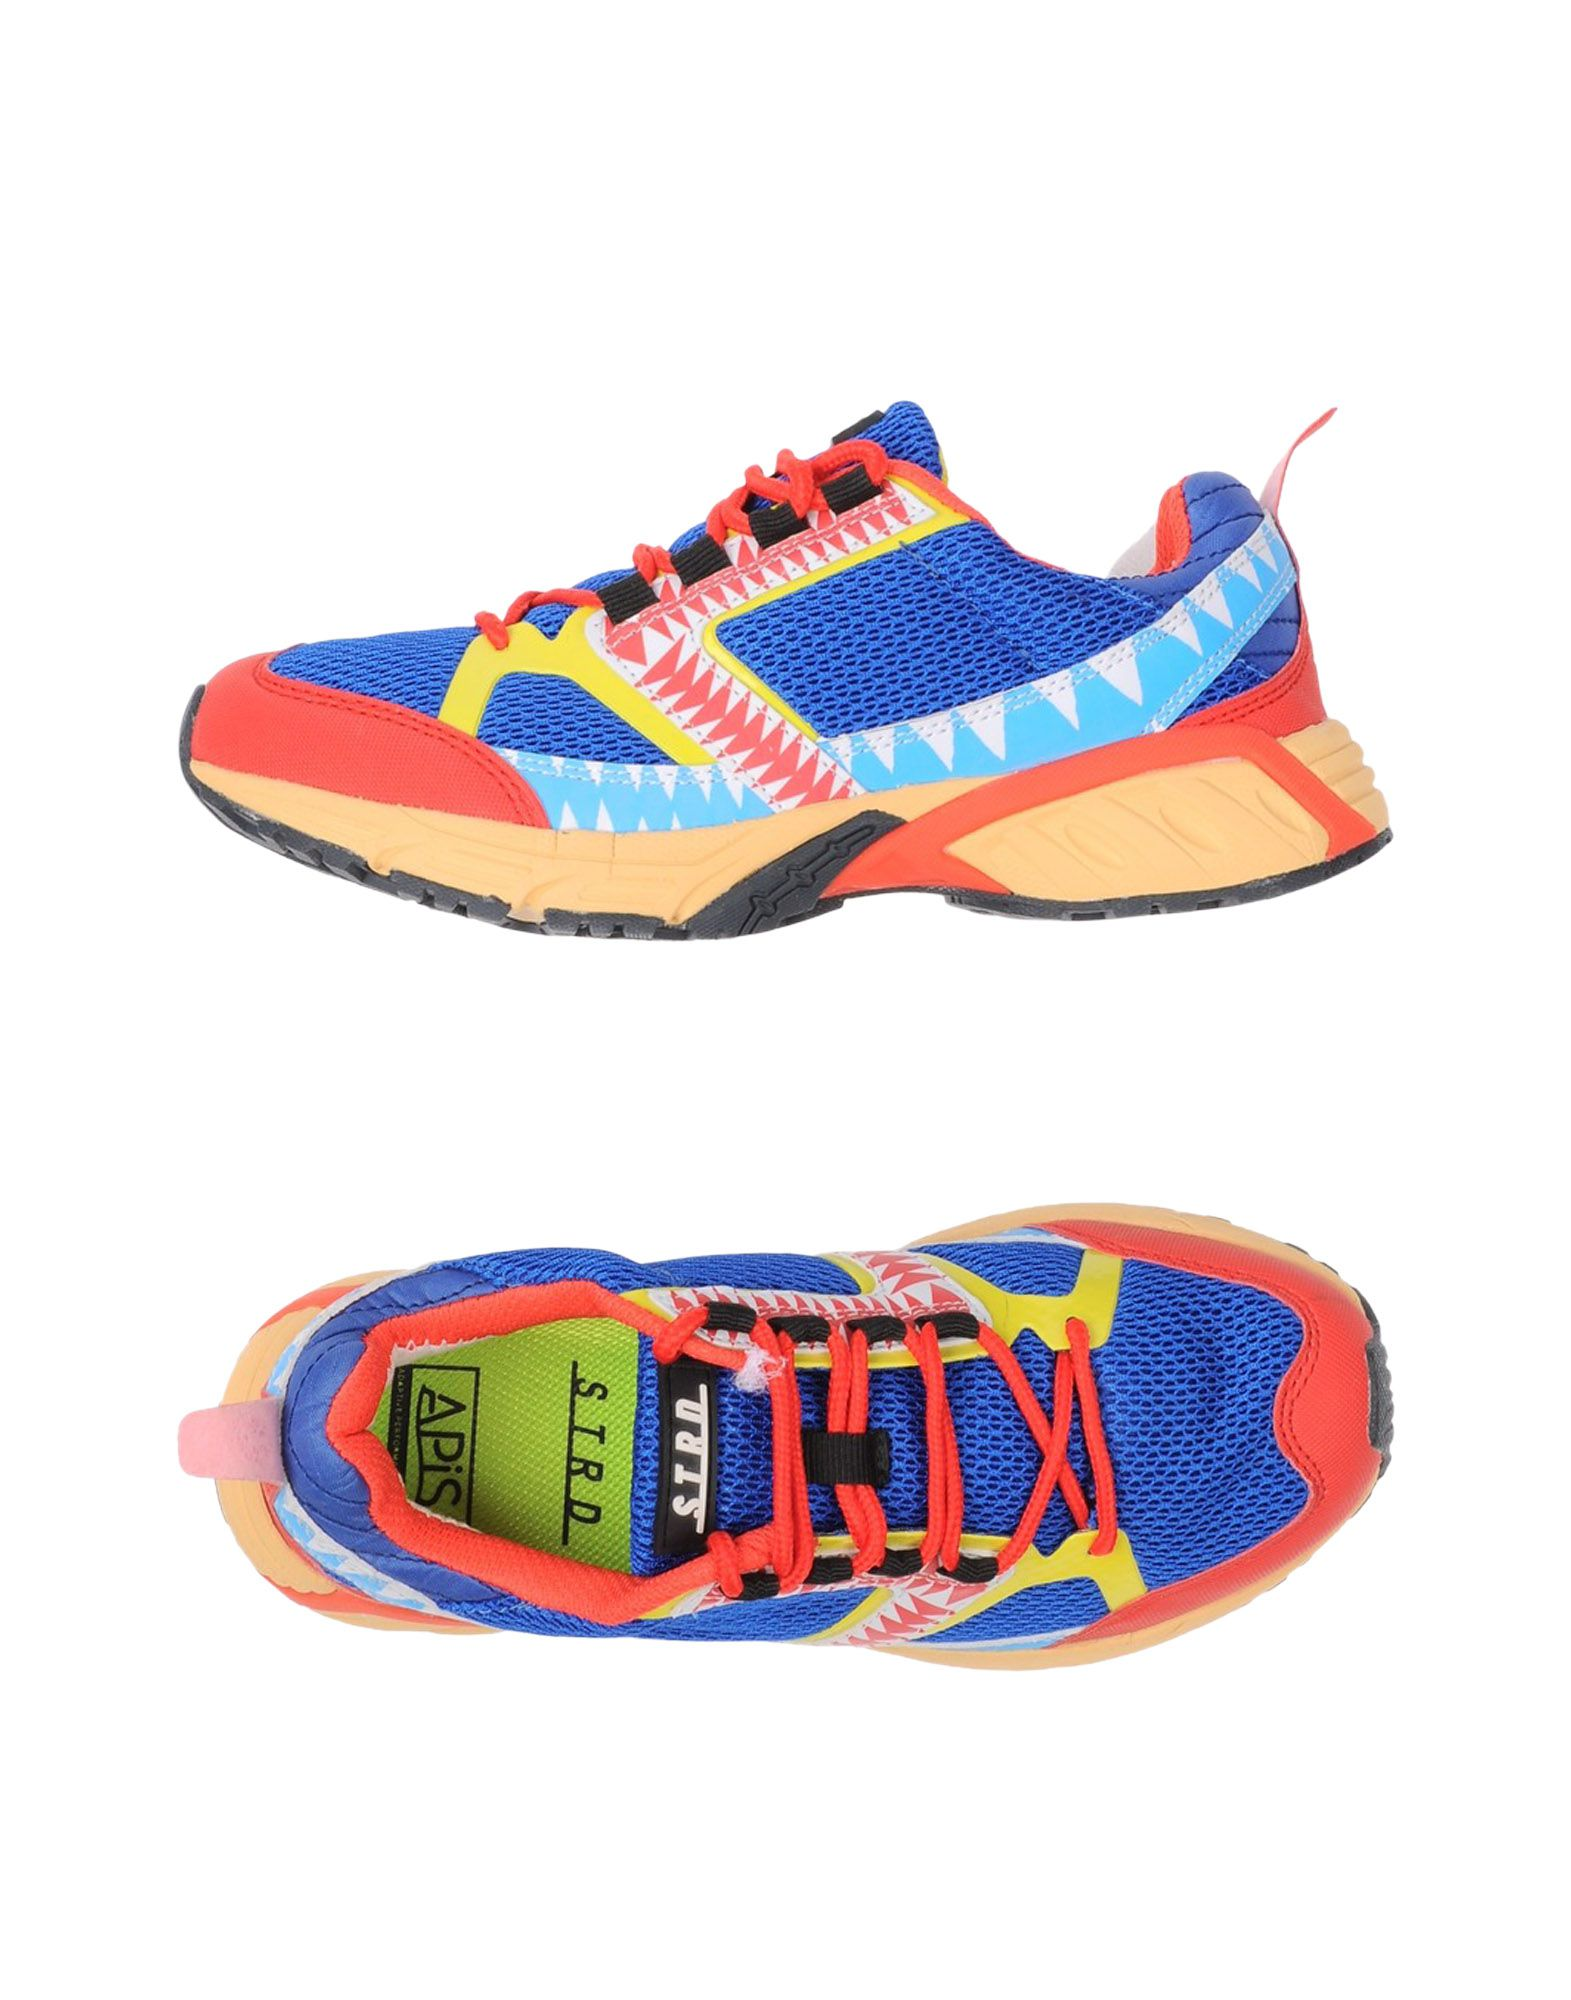 Strd By Volta Footwear Sneakers - Women Strd By Volta  Footwear Sneakers online on  Volta Australia - 44993333ET 29255d